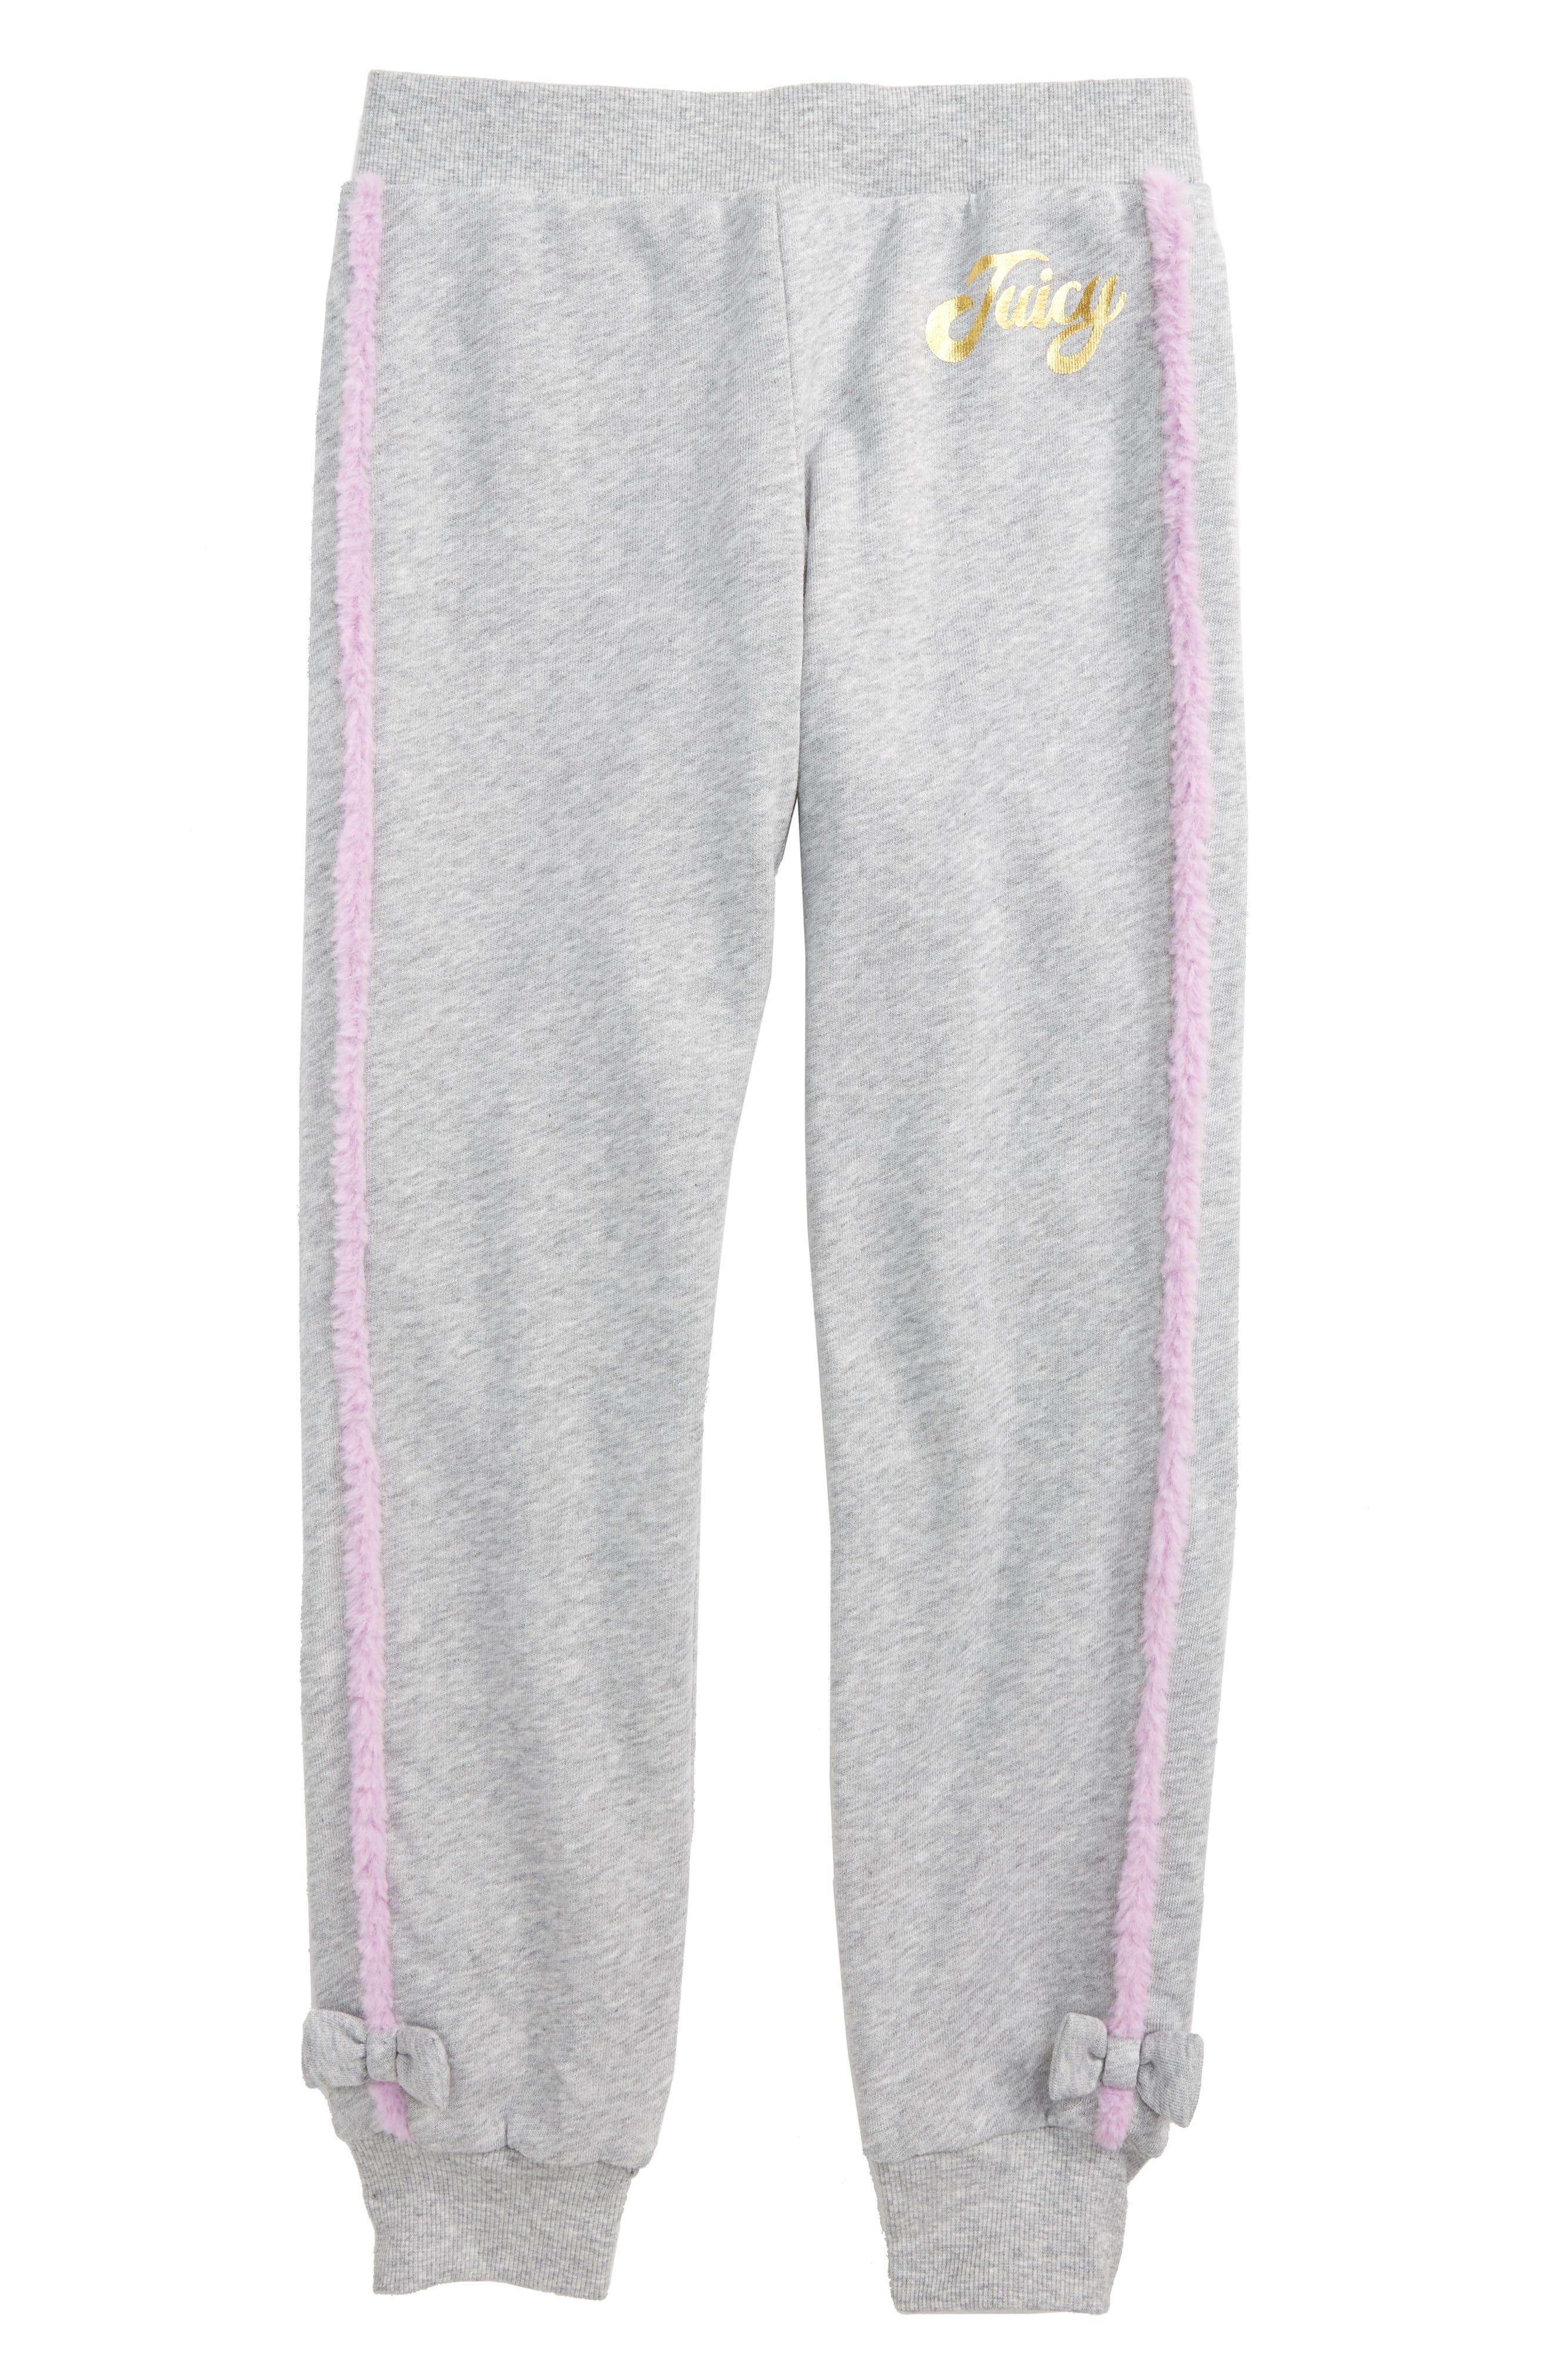 Juicy Couture Faux Fur Trim Jogger Pants (Toddler Girls & Little Girls)